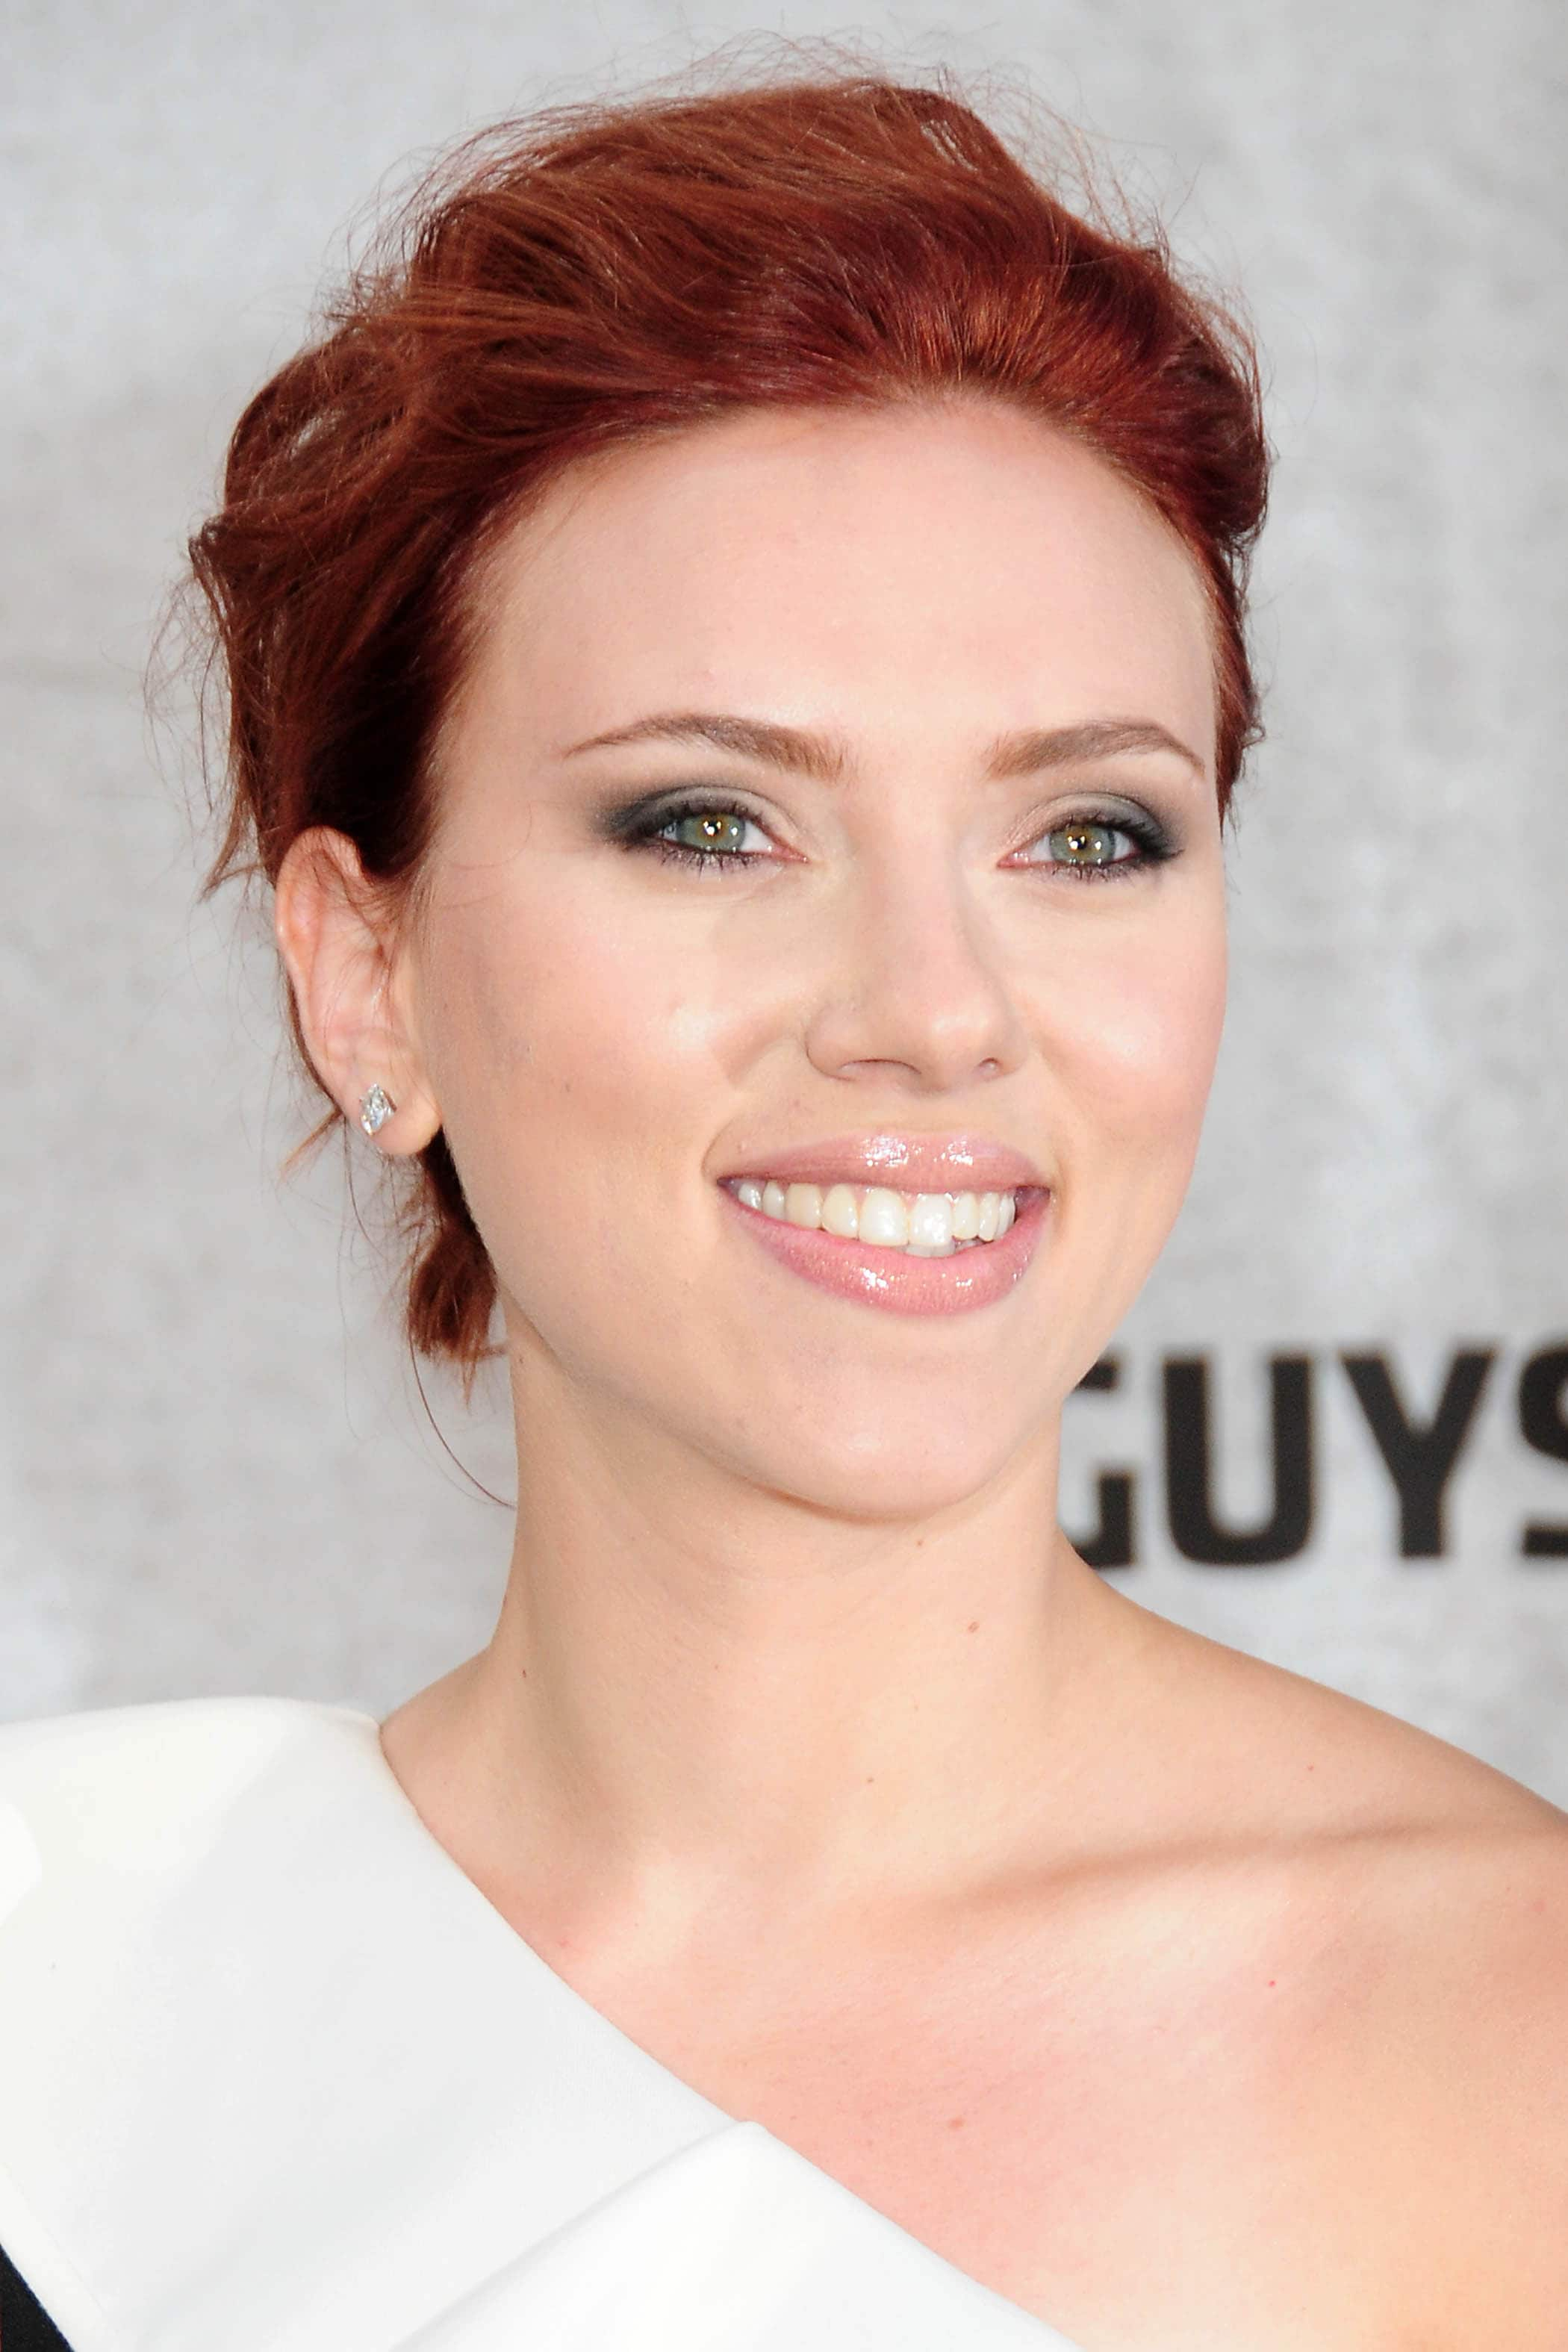 scarlett johansson on the red carpet with short auburn hair in an updo